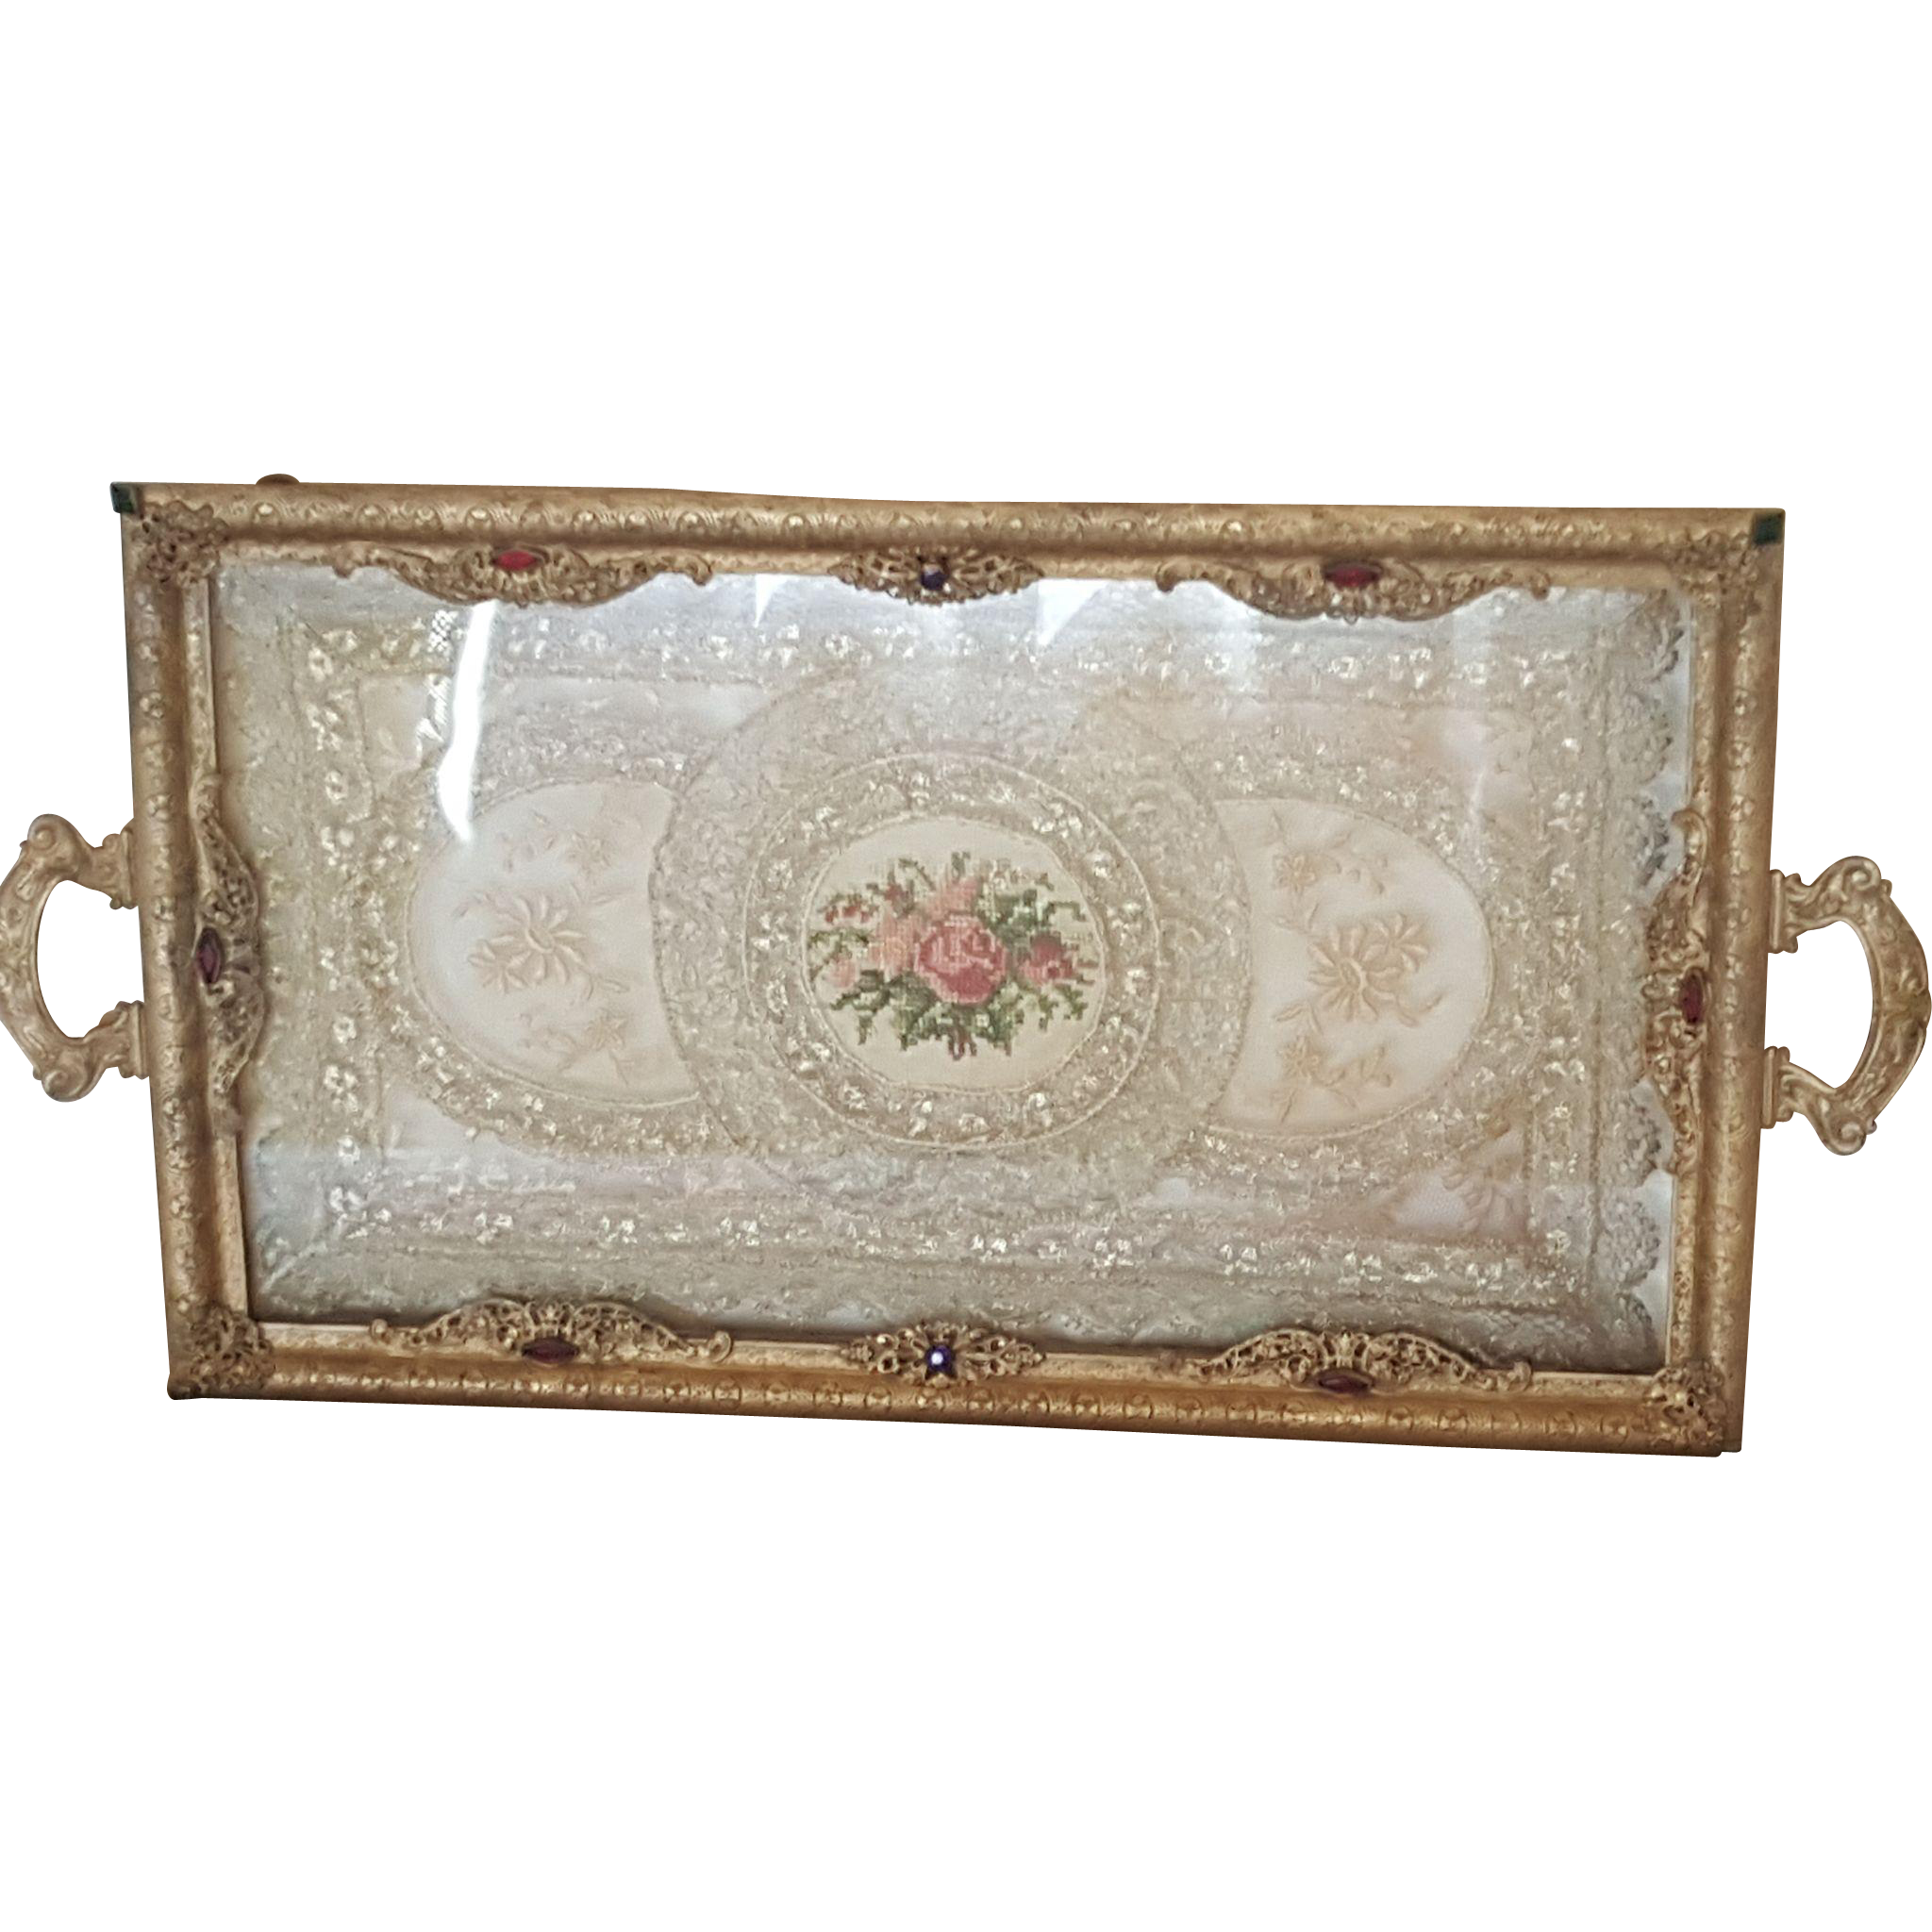 Antique vanity tray with lace insert - Lrg 1920 S Jeweled Vanity Tray W Lace Insert Silvercraft 18 Long